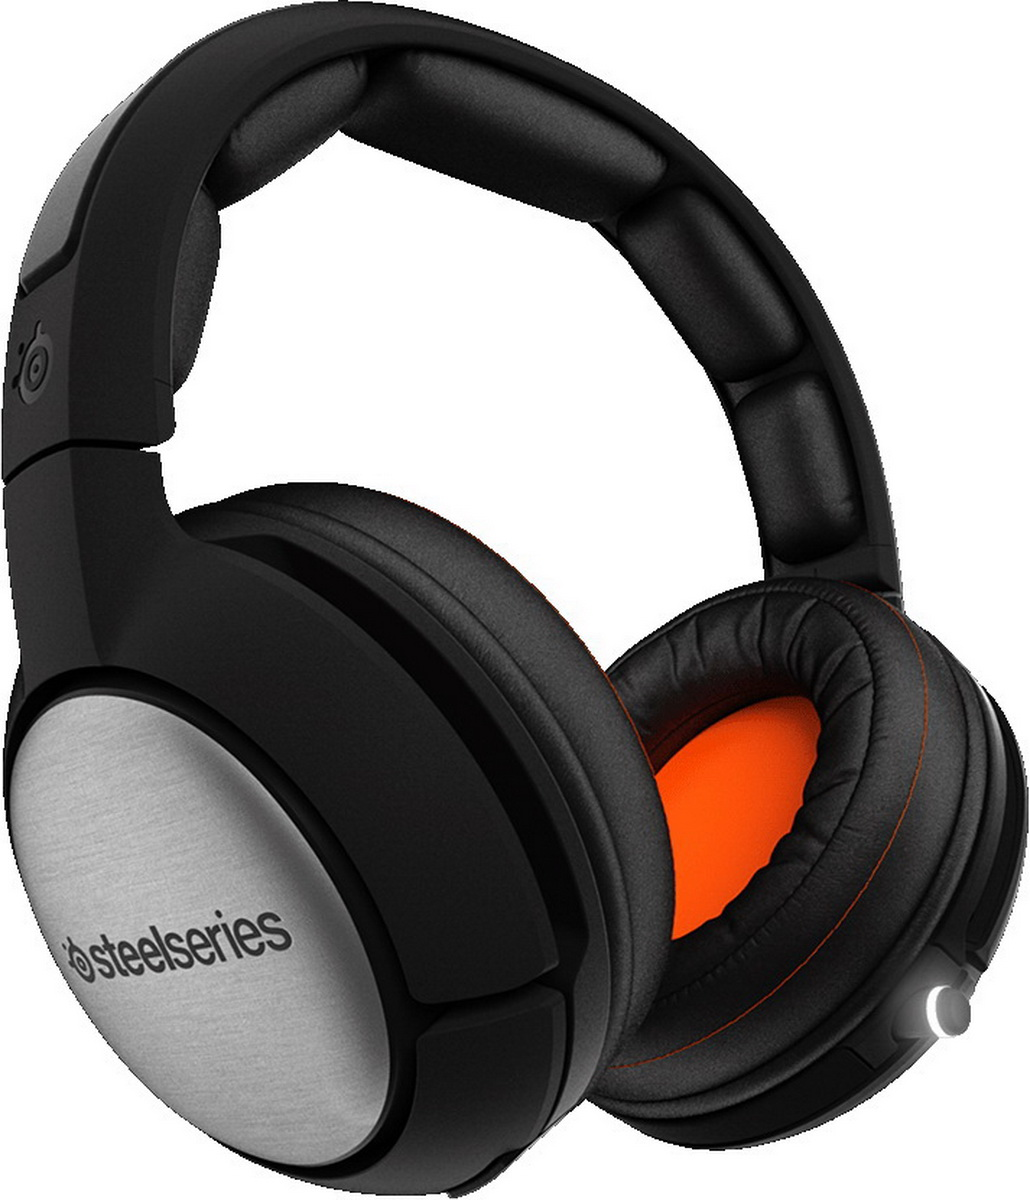 steelseries siberia 840 instructions